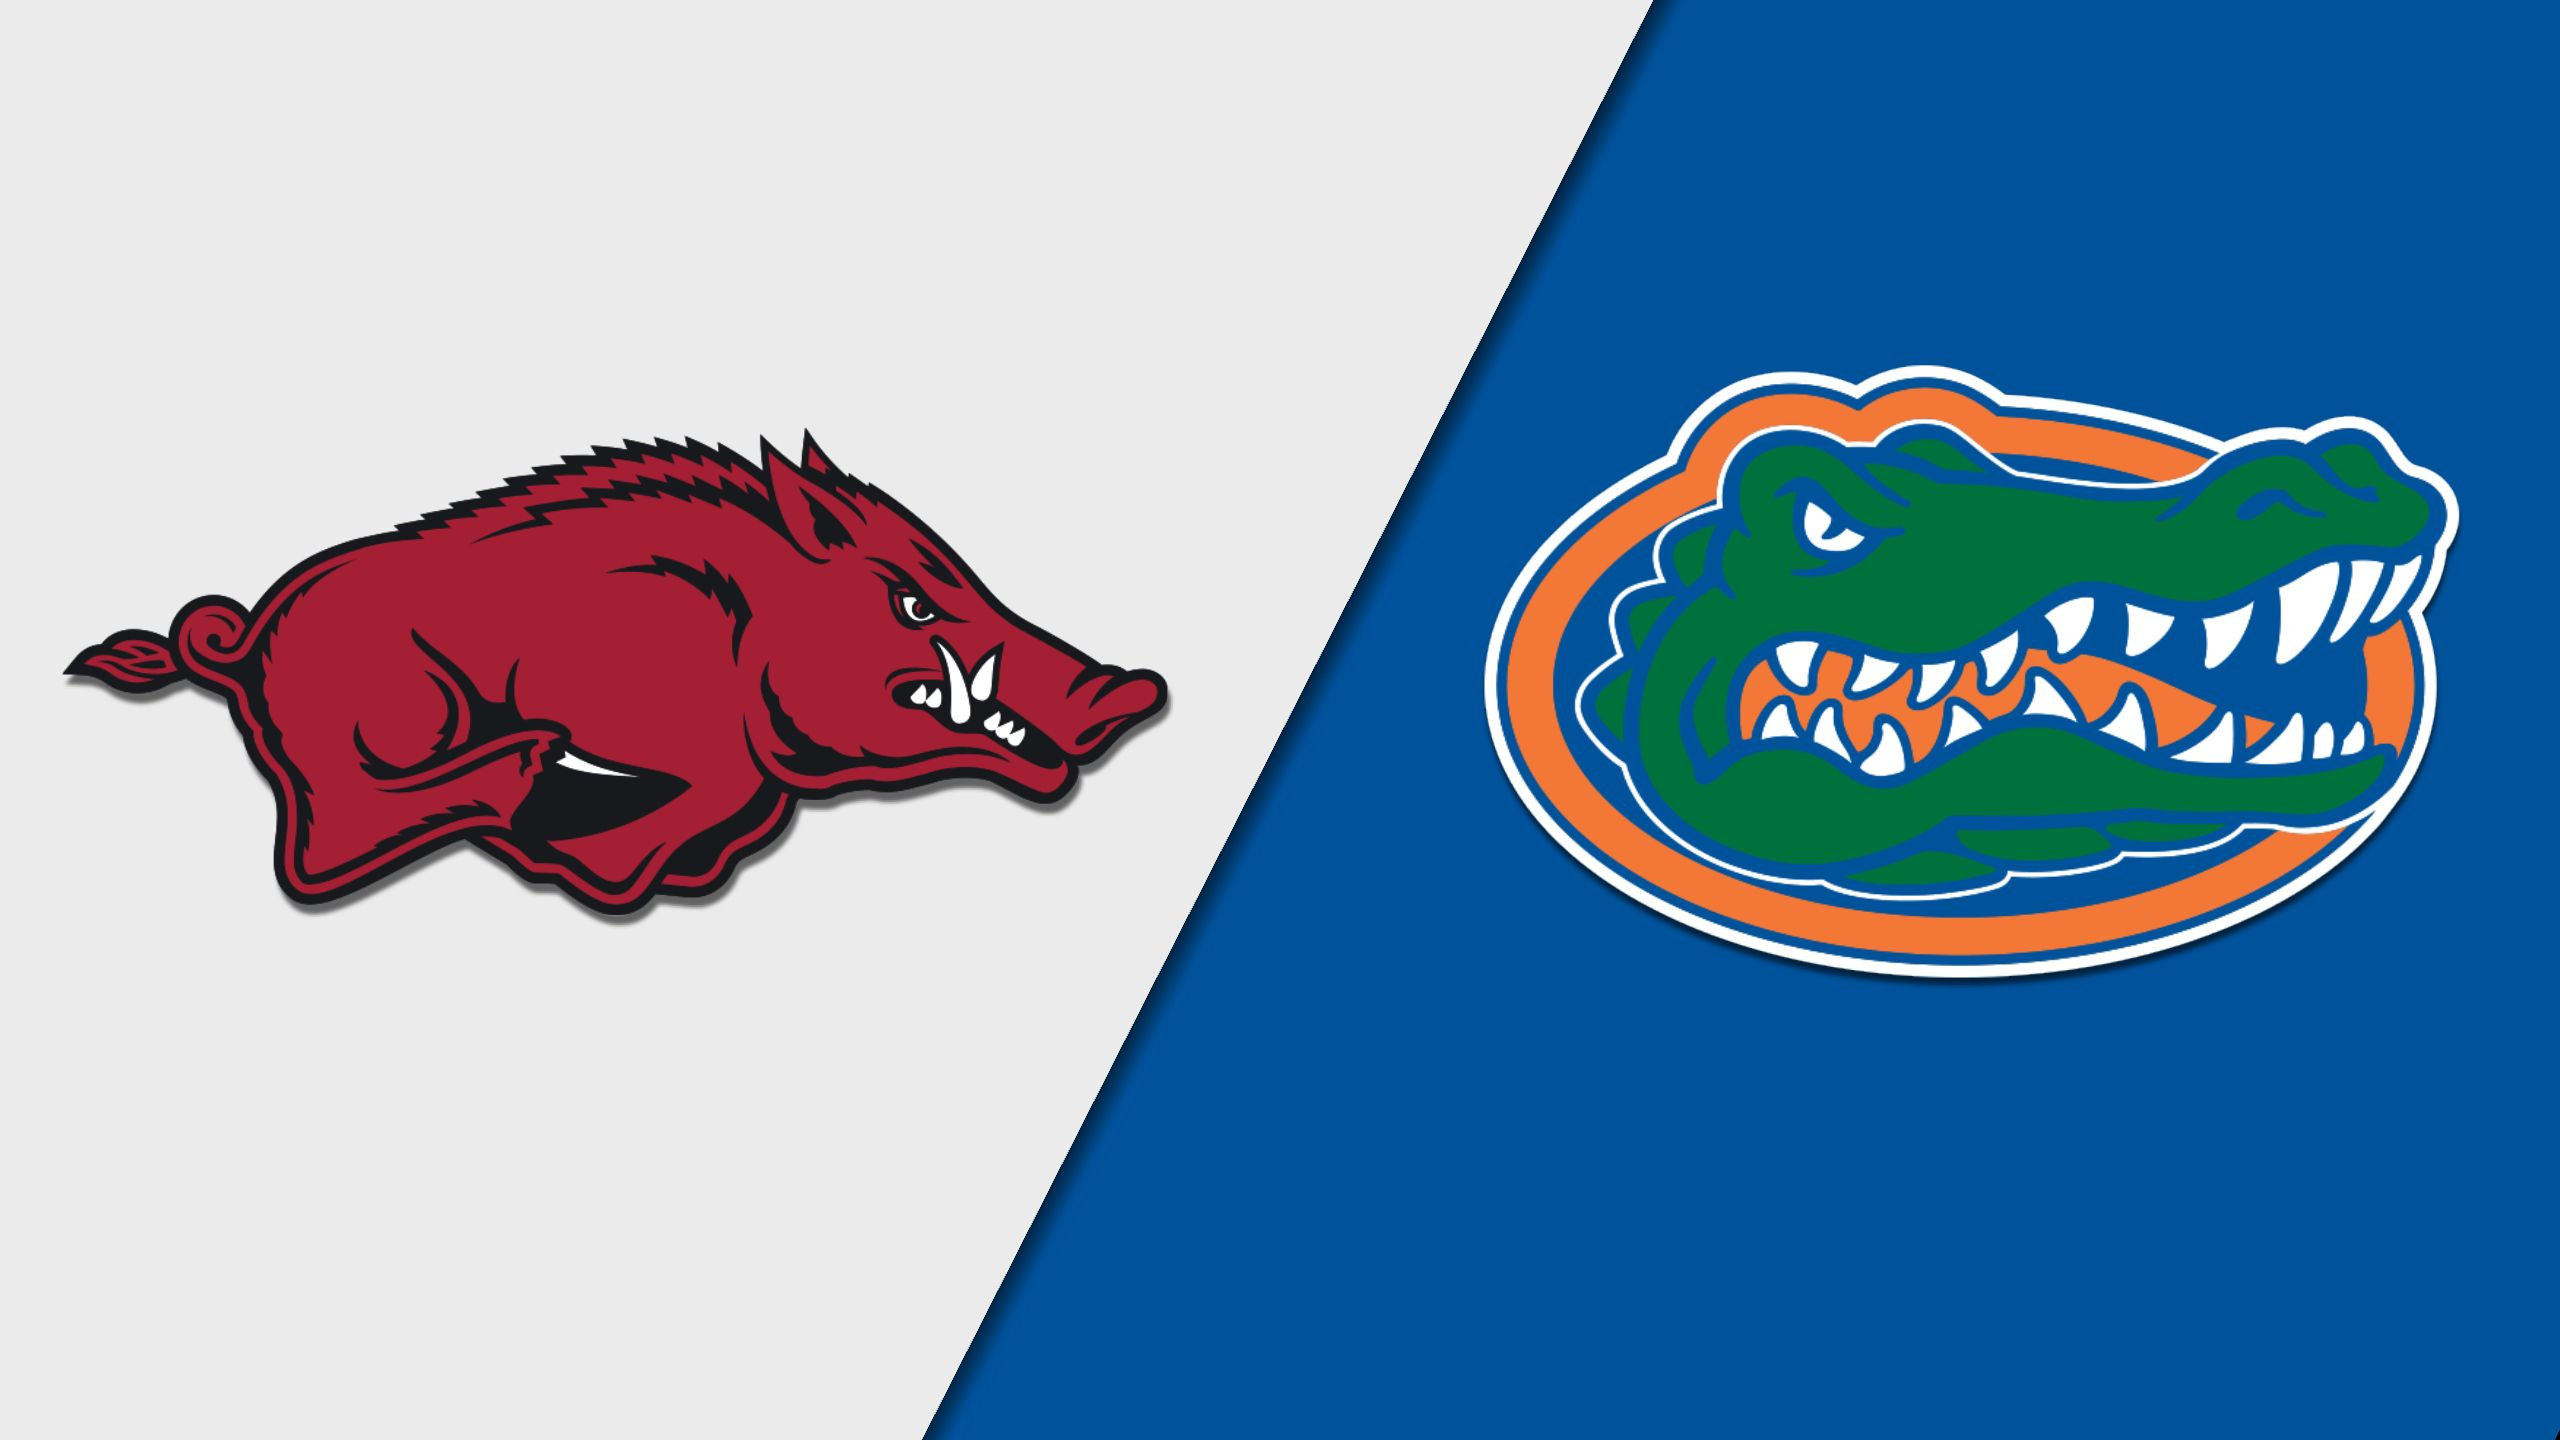 #4 Arkansas vs. #2 Florida (Baseball)